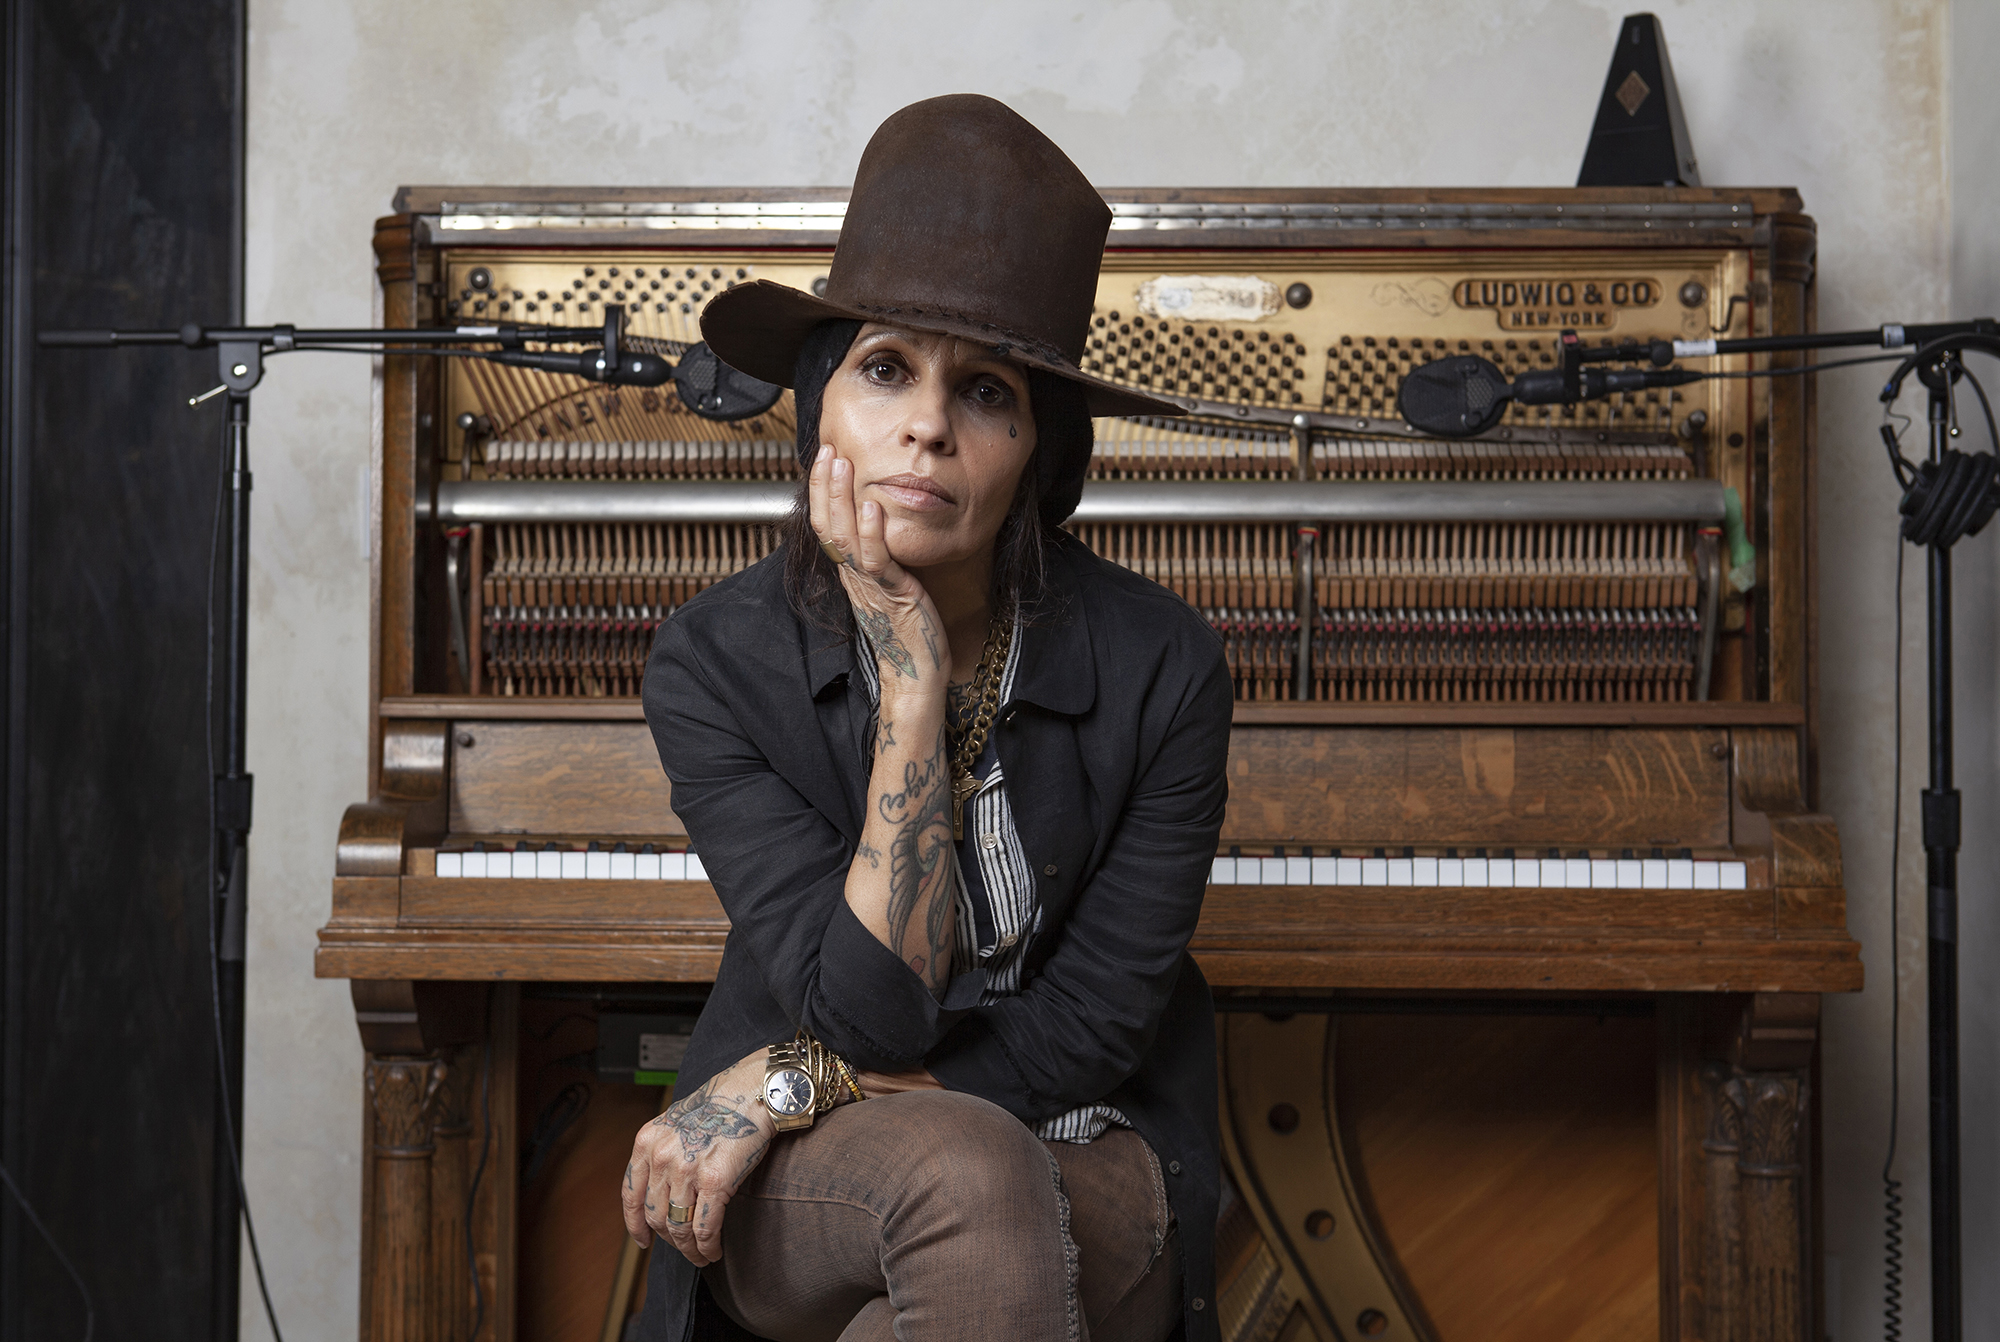 Linda Perry Headlines - Multi-Platinum producer and Grammy-nominated lead singer of 4 Non Blondes headlines the evening joined by rising star Willa Amai.